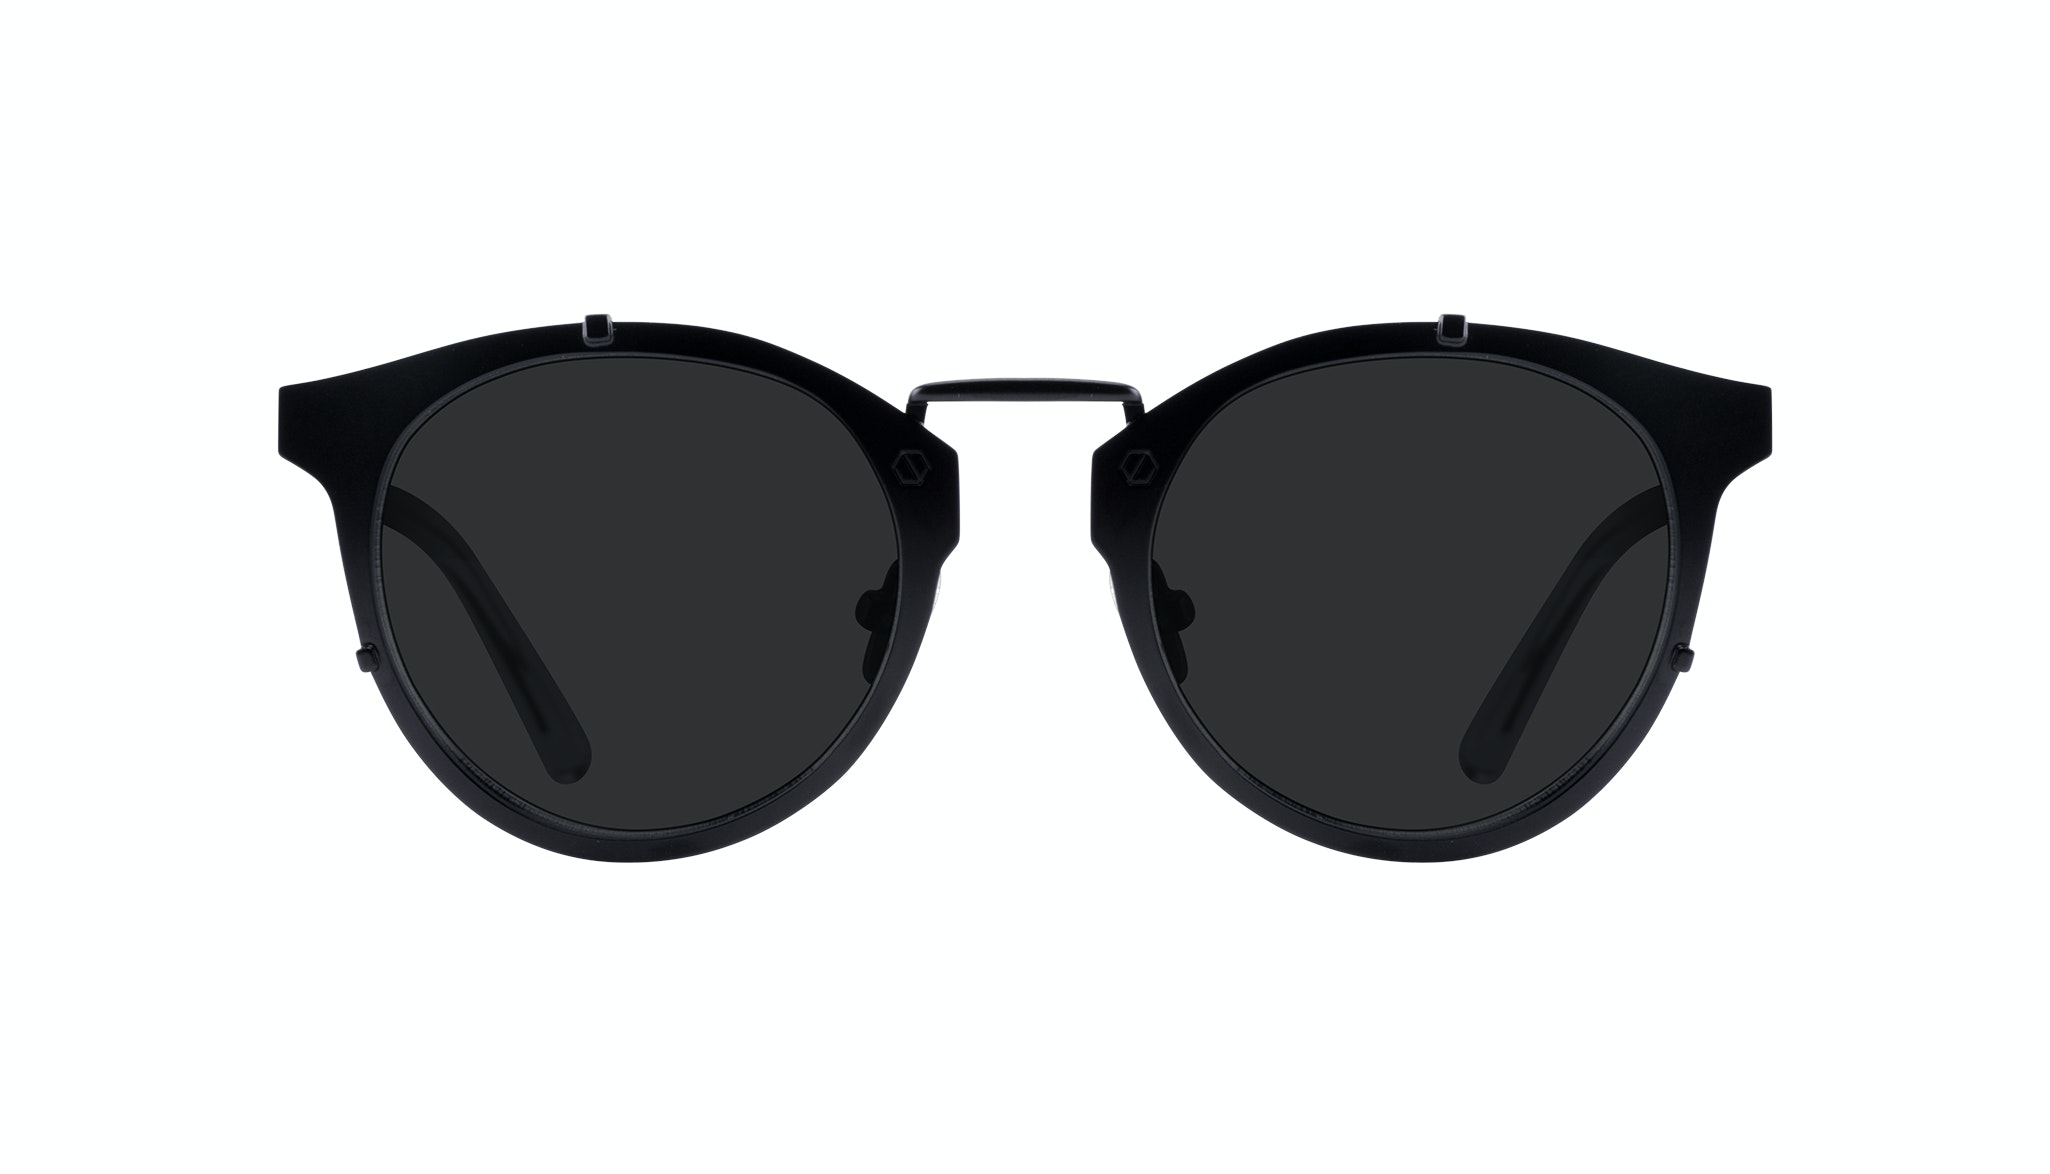 Affordable Fashion Glasses Round Sunglasses Men Way Black Front